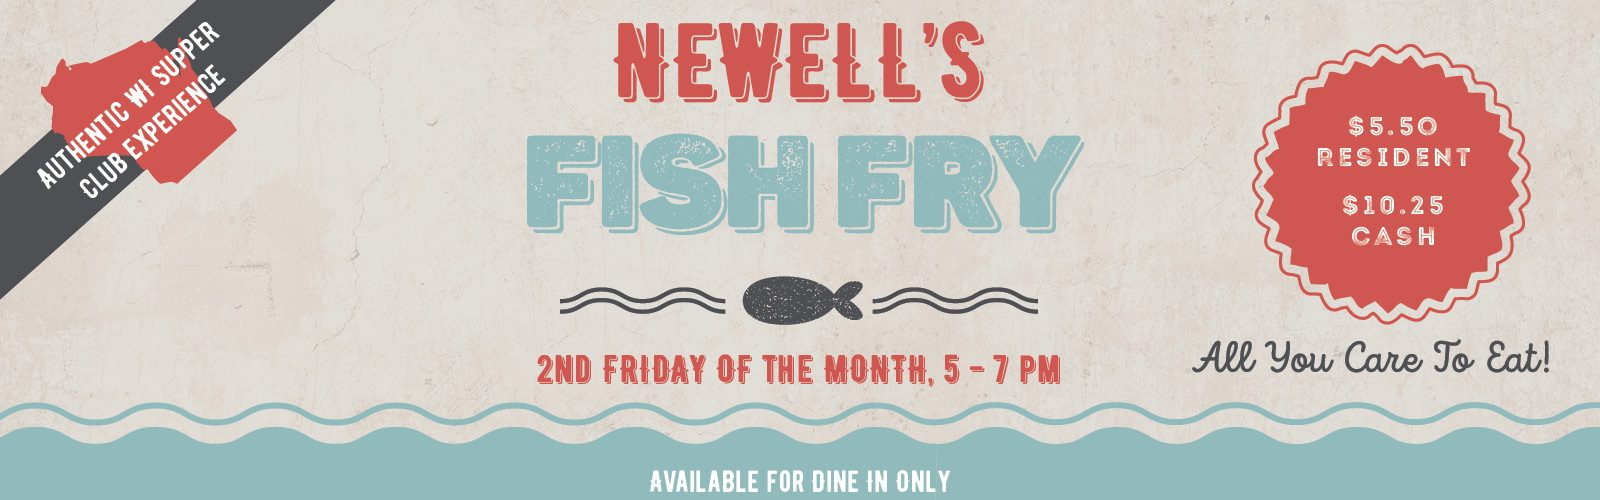 Newell's Fish Fry, 2nd Friday of the month, 5-7 pm, $5.50 Resident or $10.25 Cash - All You Care to Eat